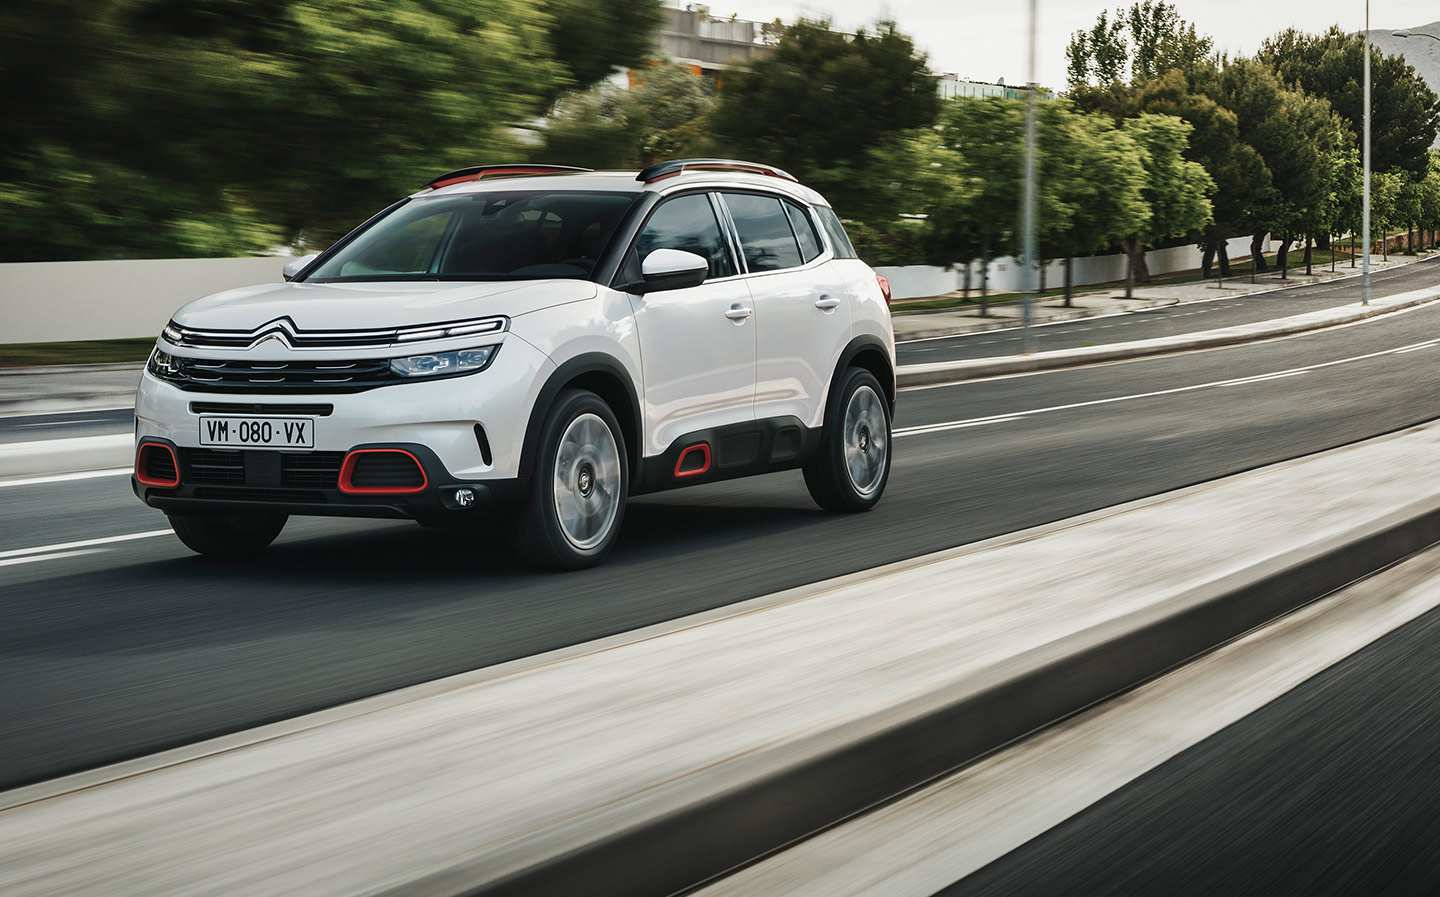 67 The Best 2019 Citroen C5 Price And Release Date